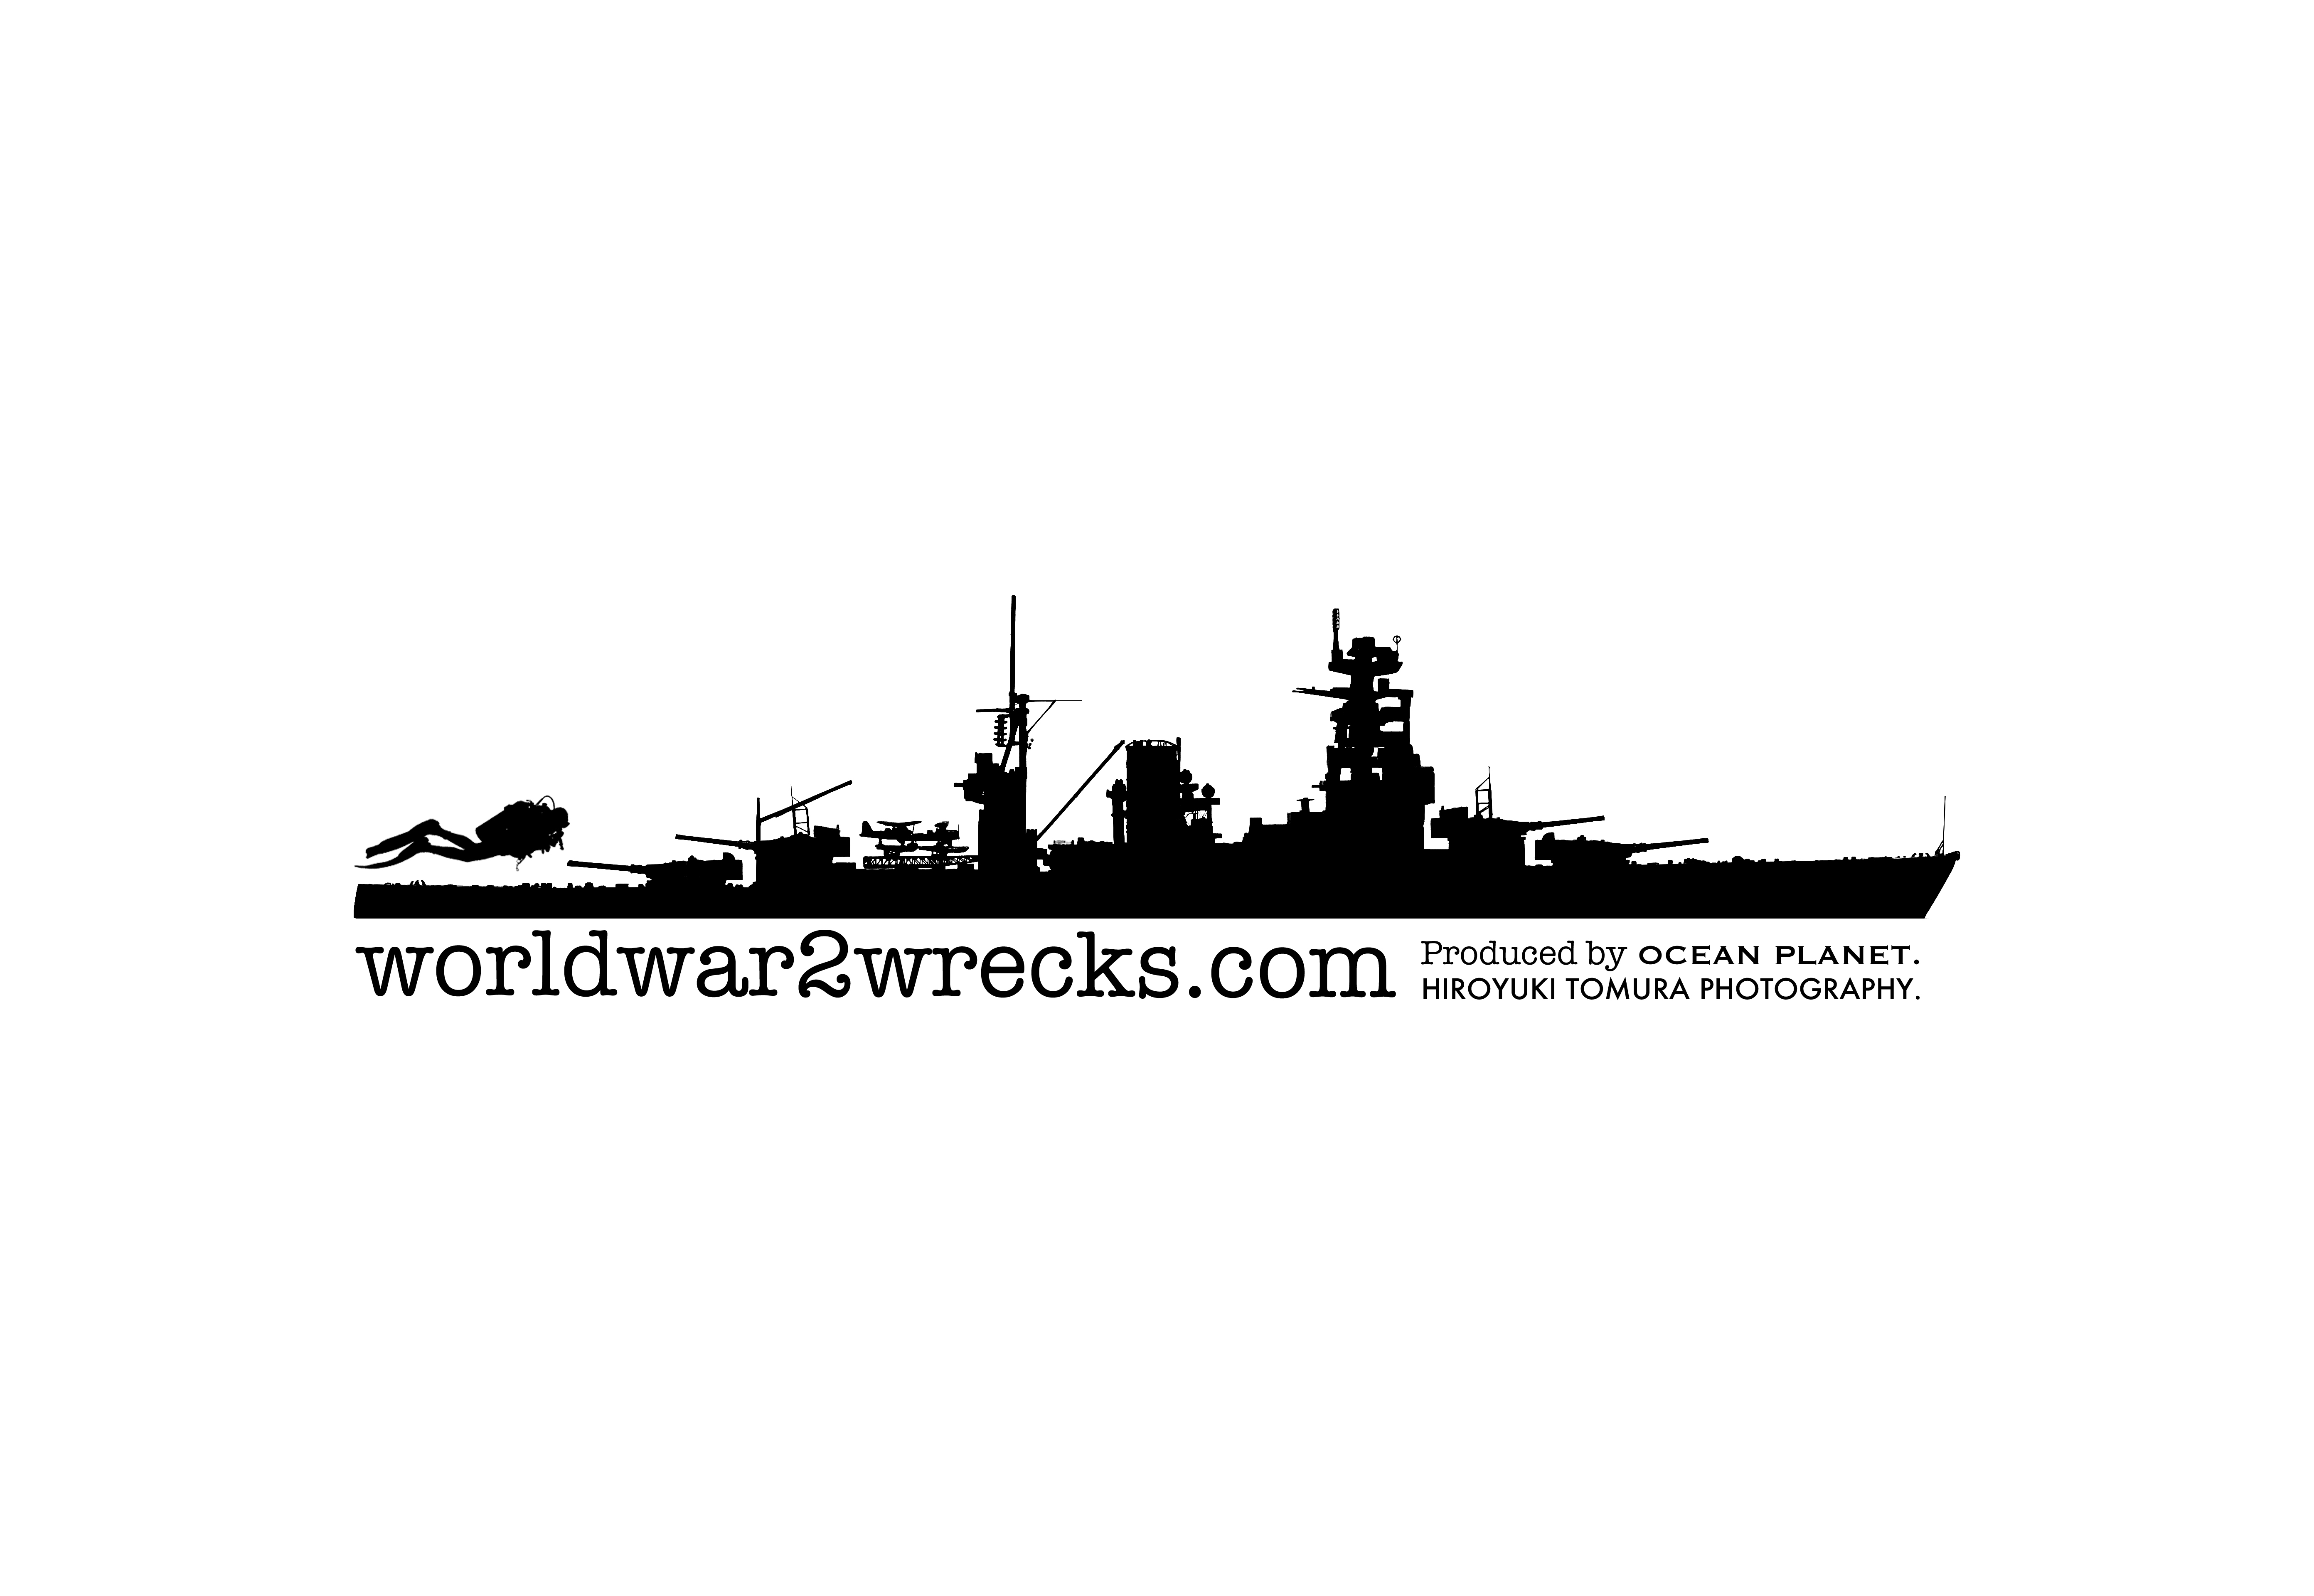 Worldwar2wrecks